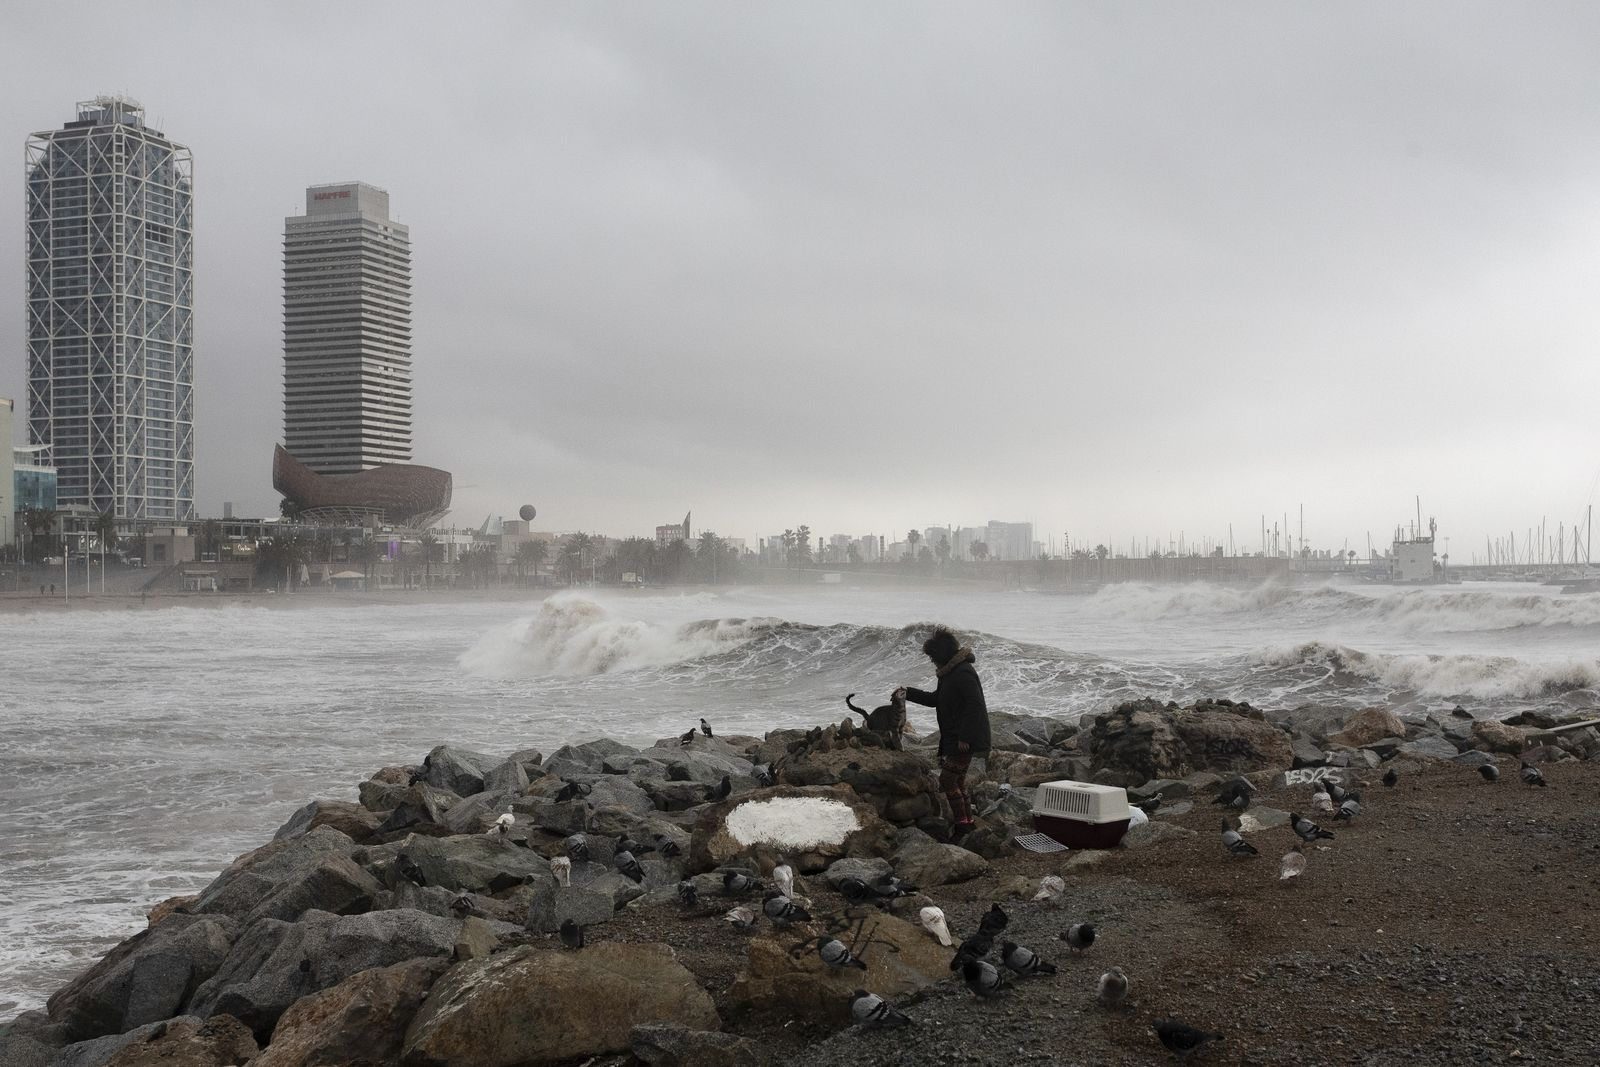 A woman pets a cat in Barcelona's beach, Spain, Wednesday, Jan. 22, 2020. Massive waves and gale-force winds smashed into seafront towns, damaging many shops and restaurants and flooding some streets. (AP Photo/Joan Mateu)